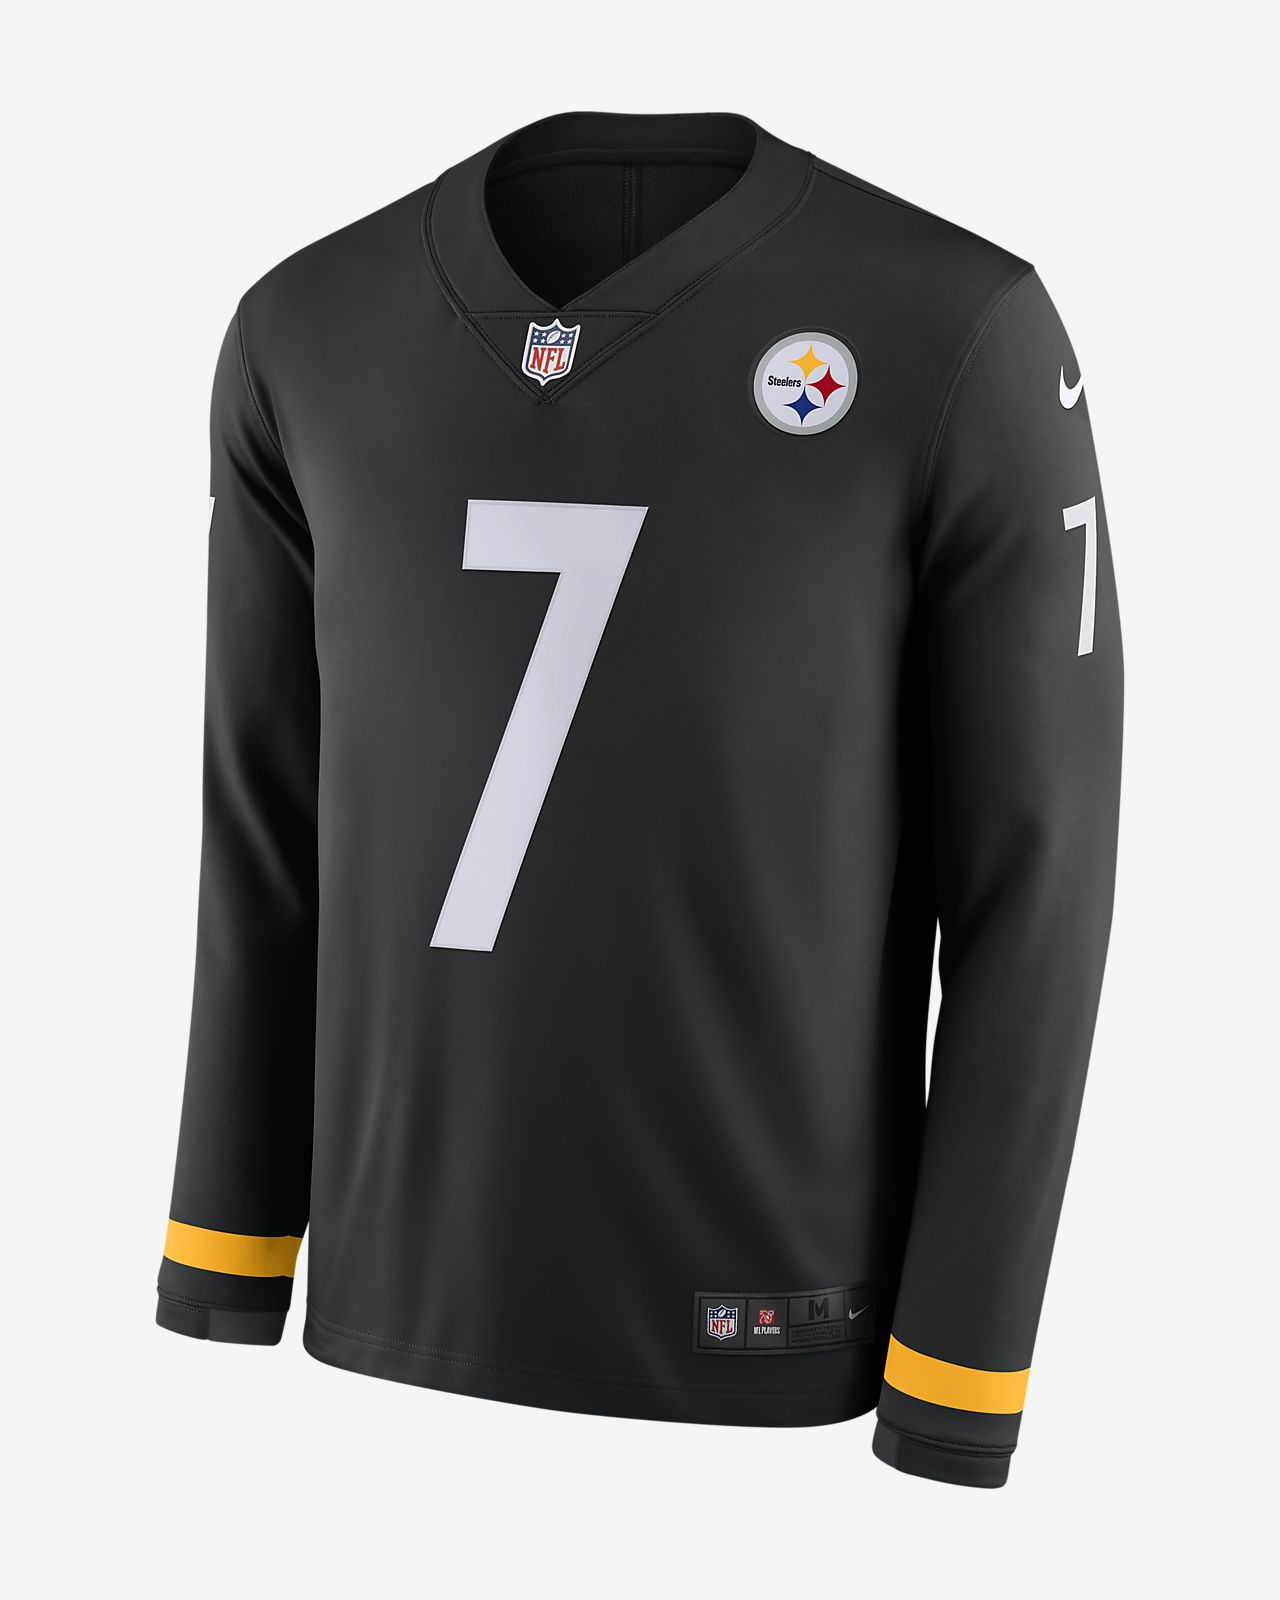 b0d24fdc7 NFL Pittsburgh Steelers Jersey (Ben Roethlisberger) Men s Long ...